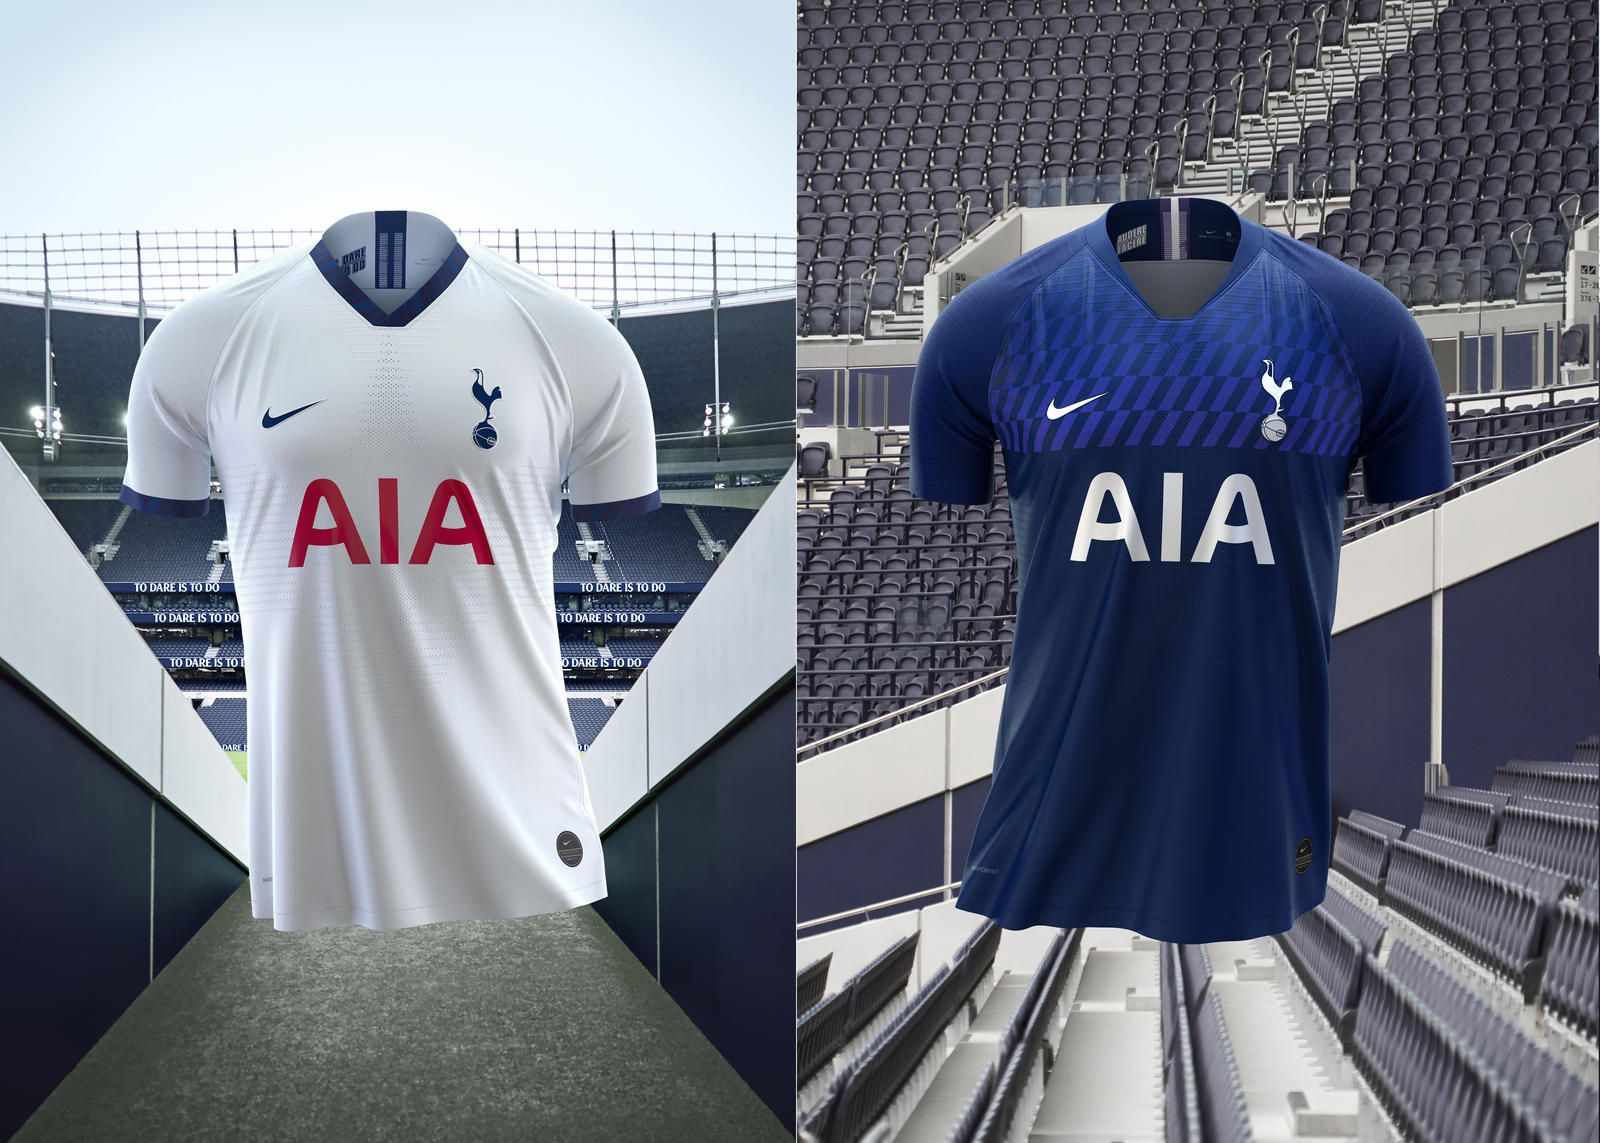 Tottenham Hotspur Launch 201920 Home & Away Kits